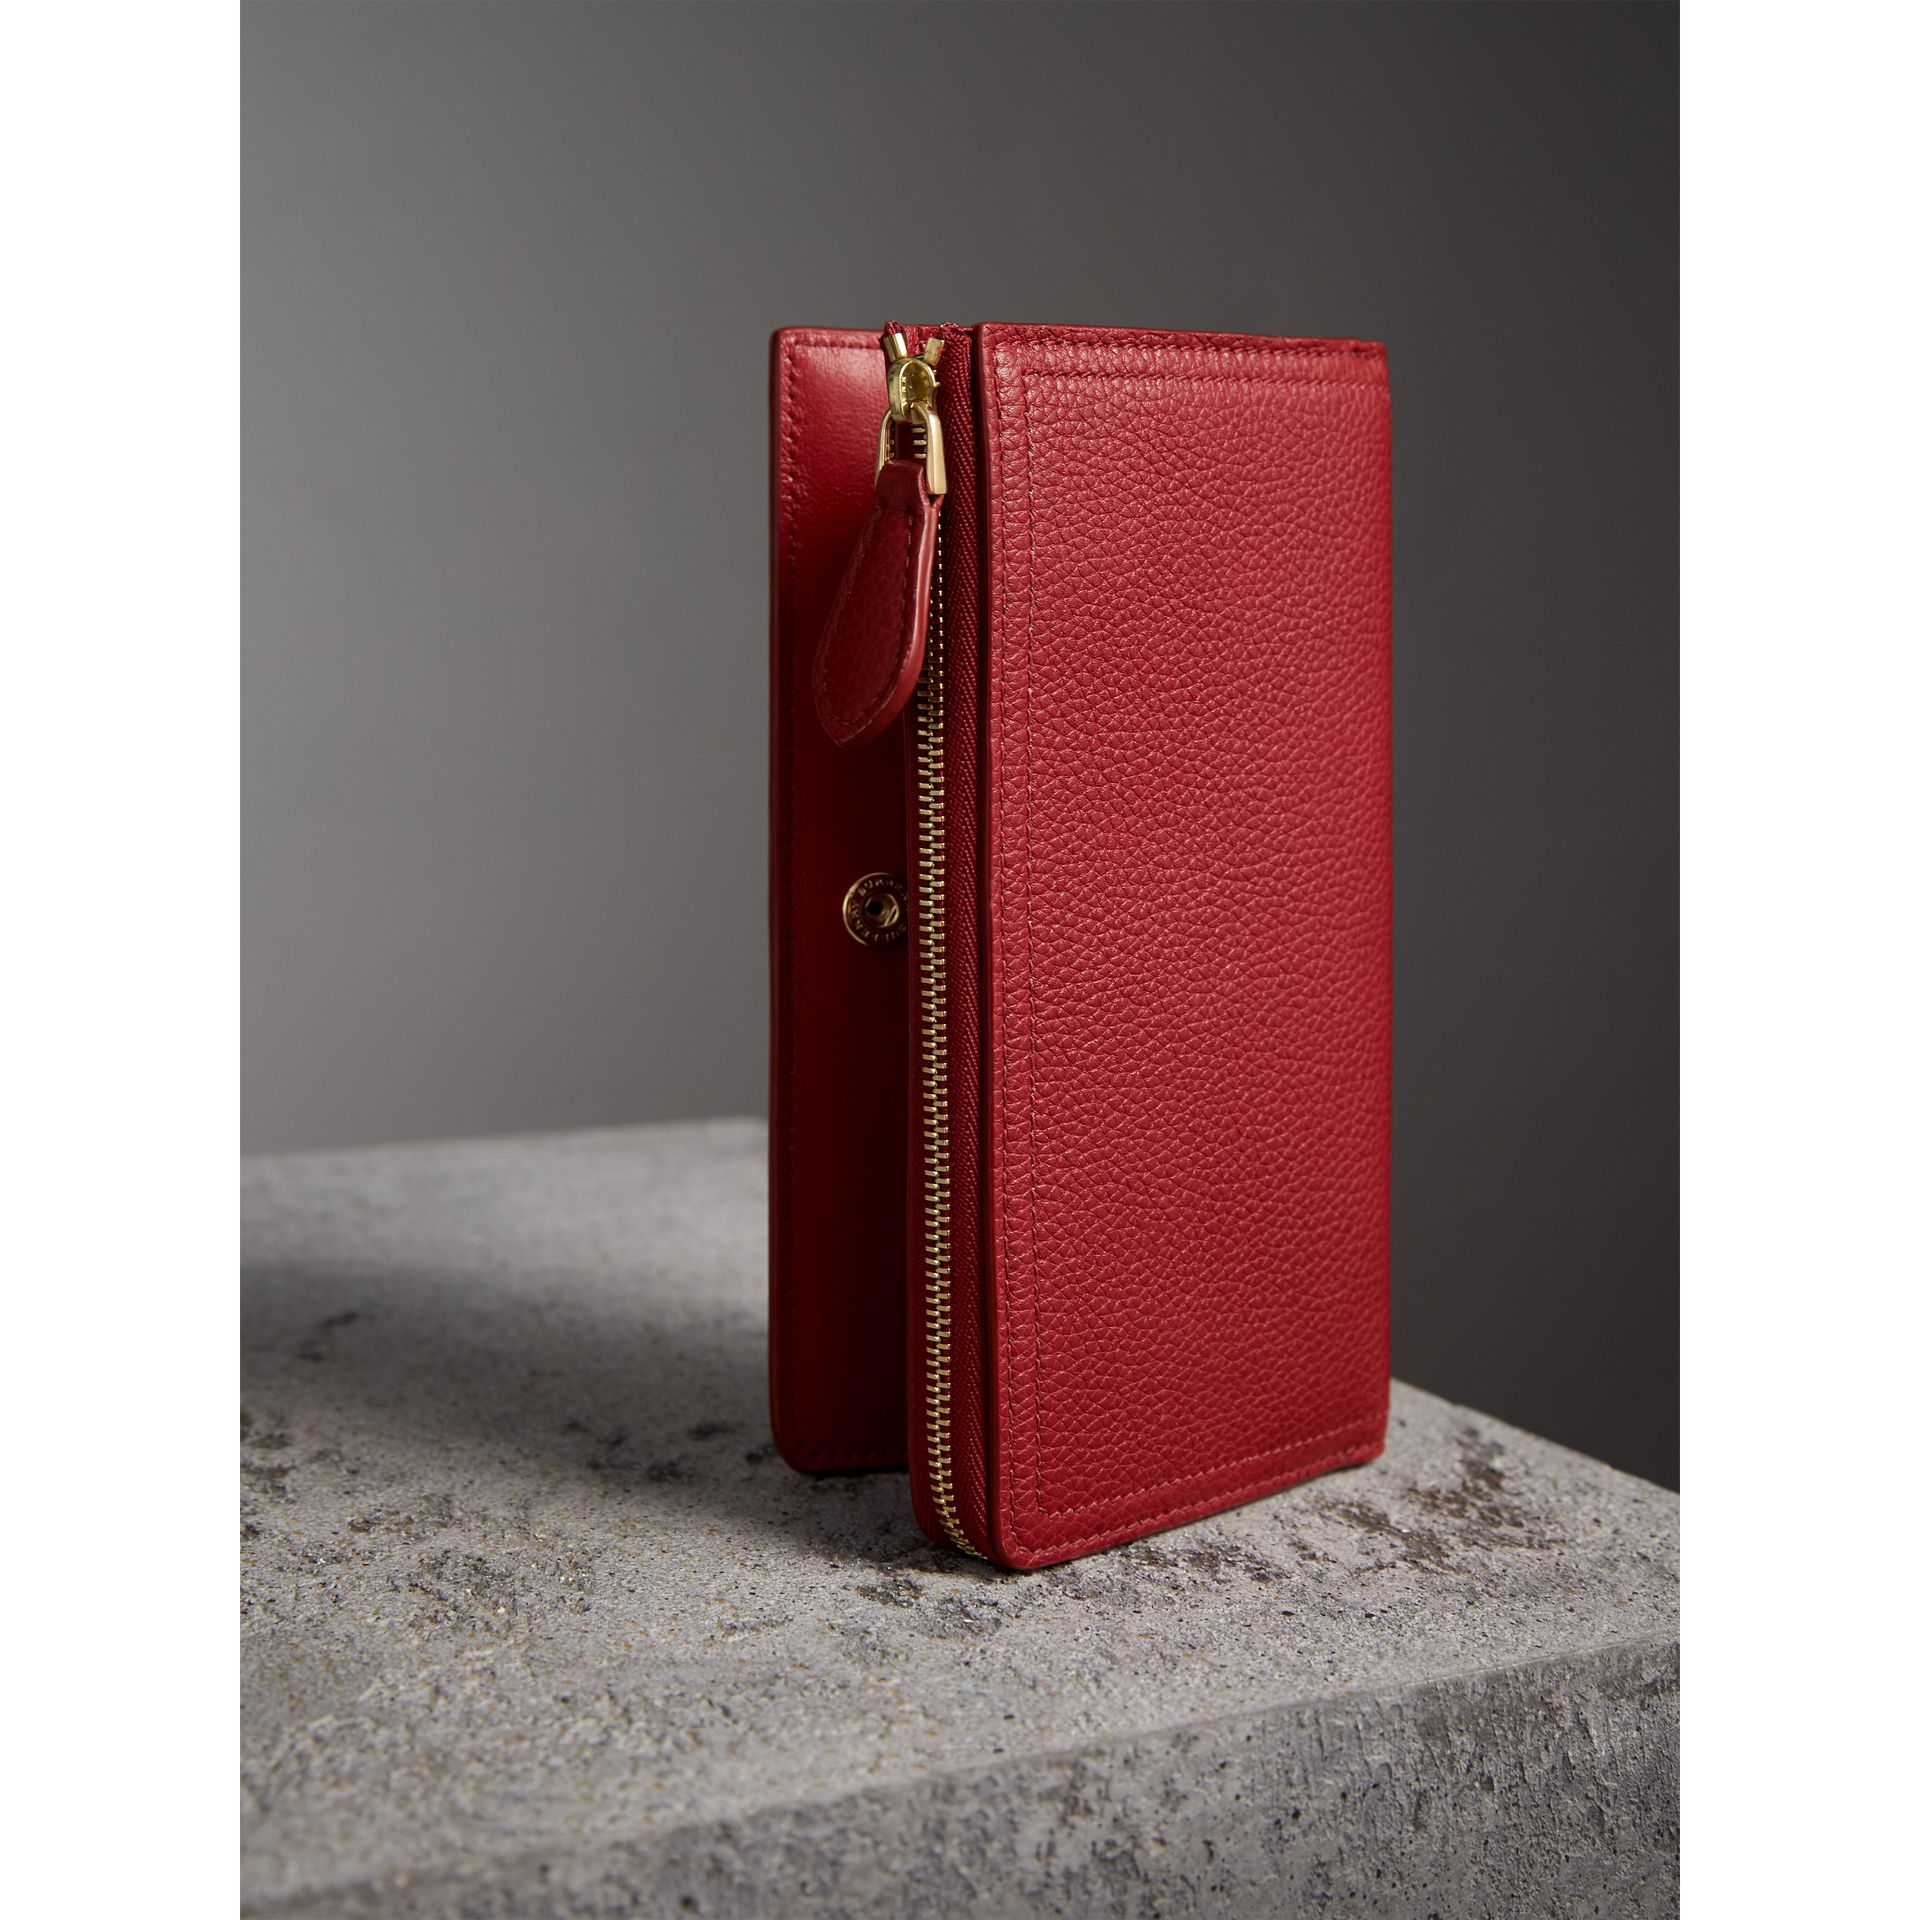 Grainy Leather Ziparound Wallet in Parade Red - Women | Burberry Australia - gallery image 2